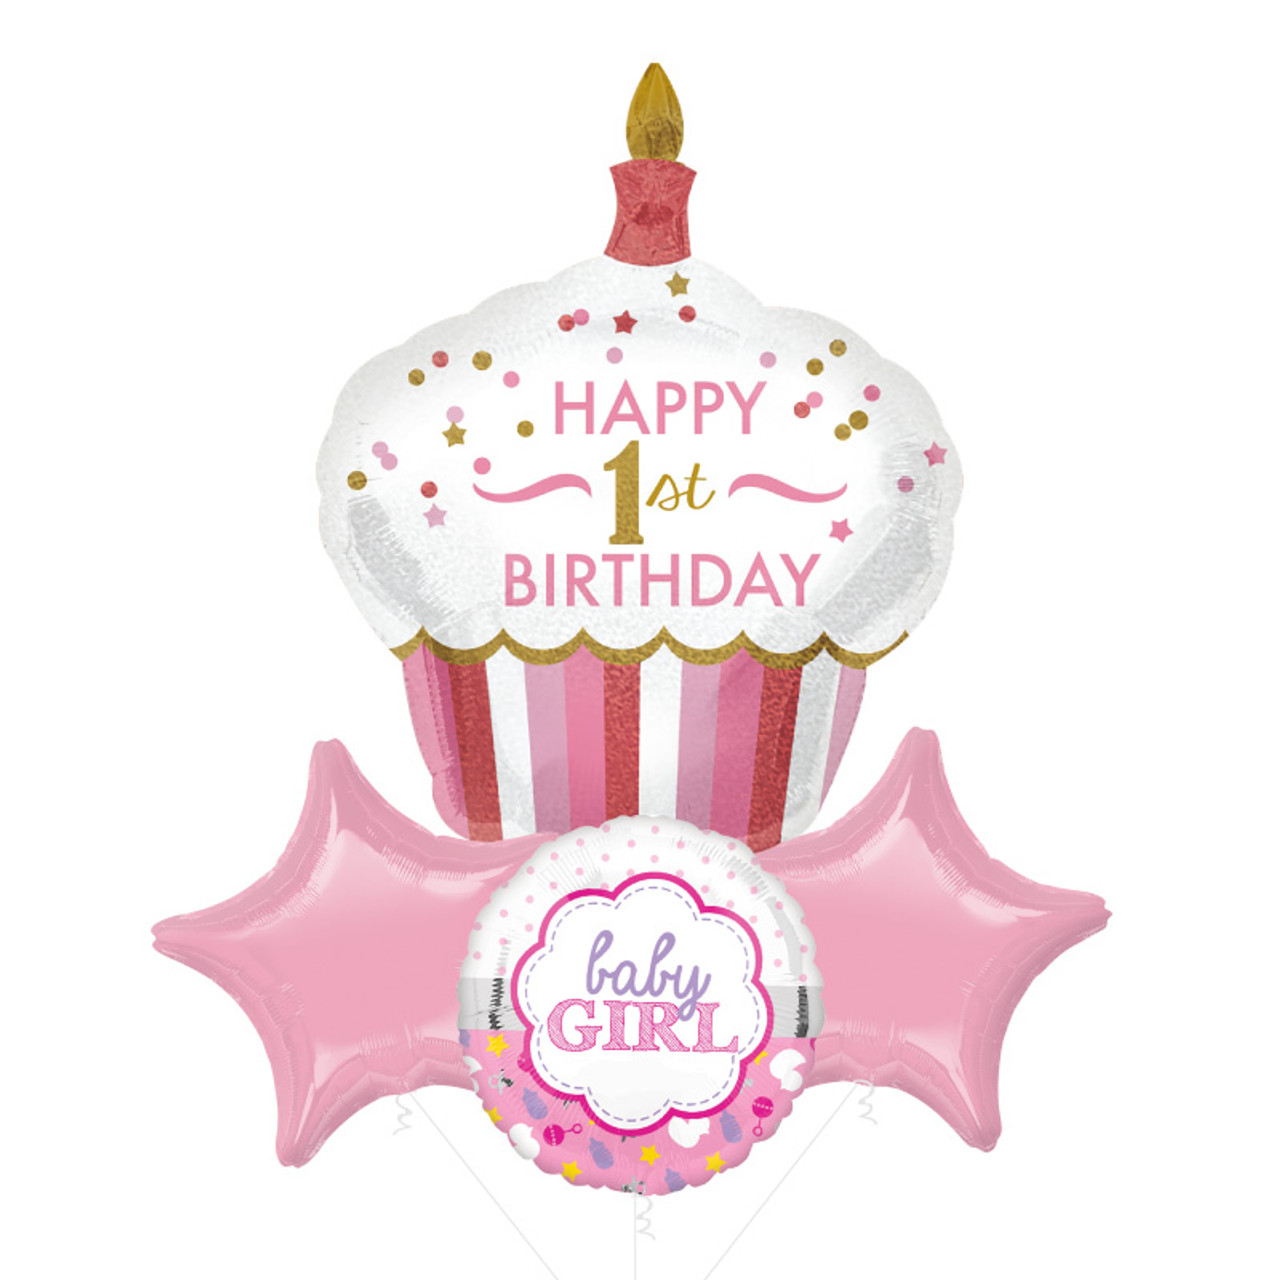 [Party] Happy 1st Birthday Cupcake Girl Star Foil Balloons Bouquet